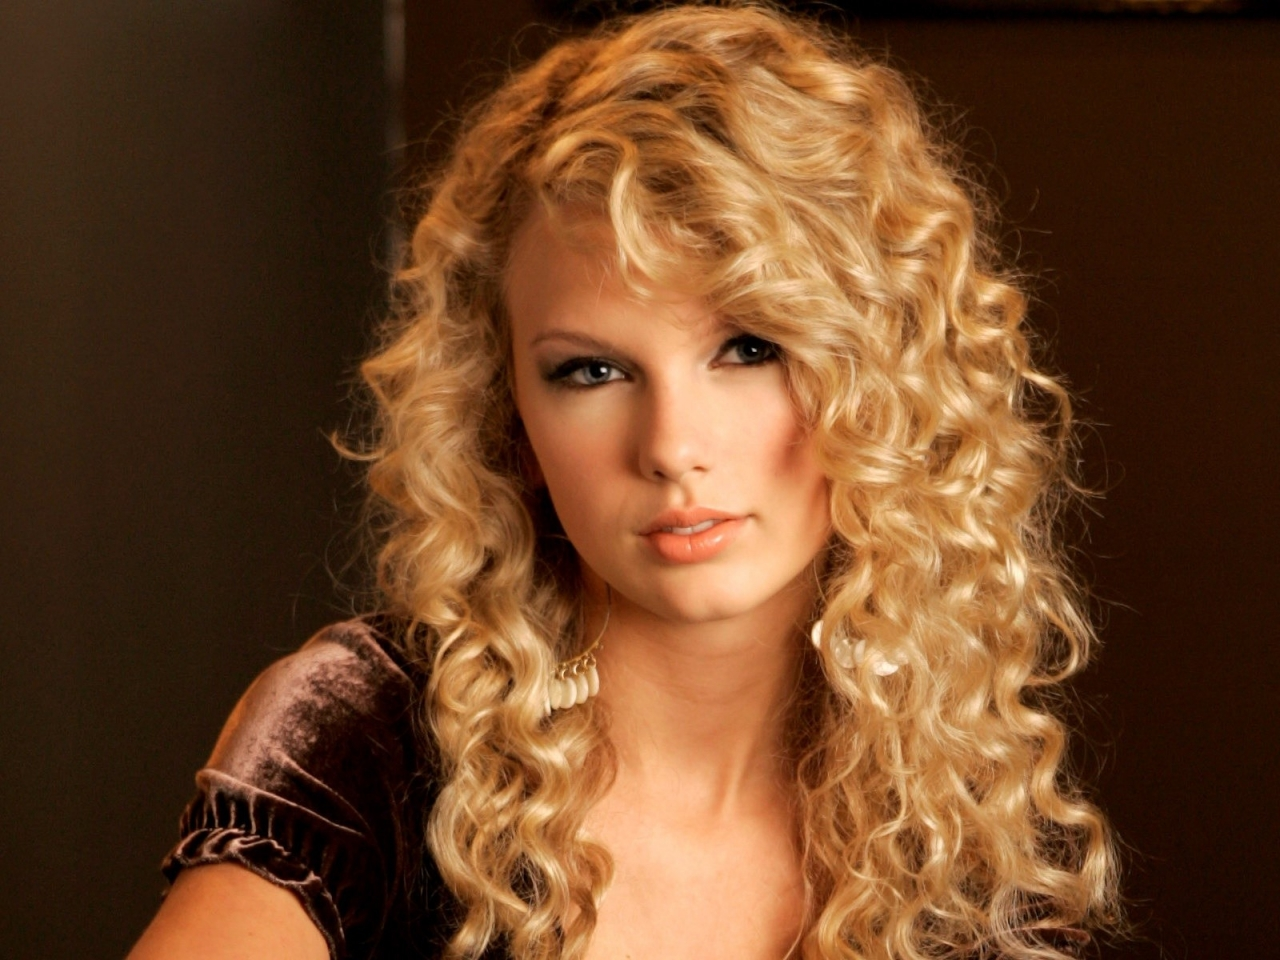 El rostro de Taylor Swift - 1280x960